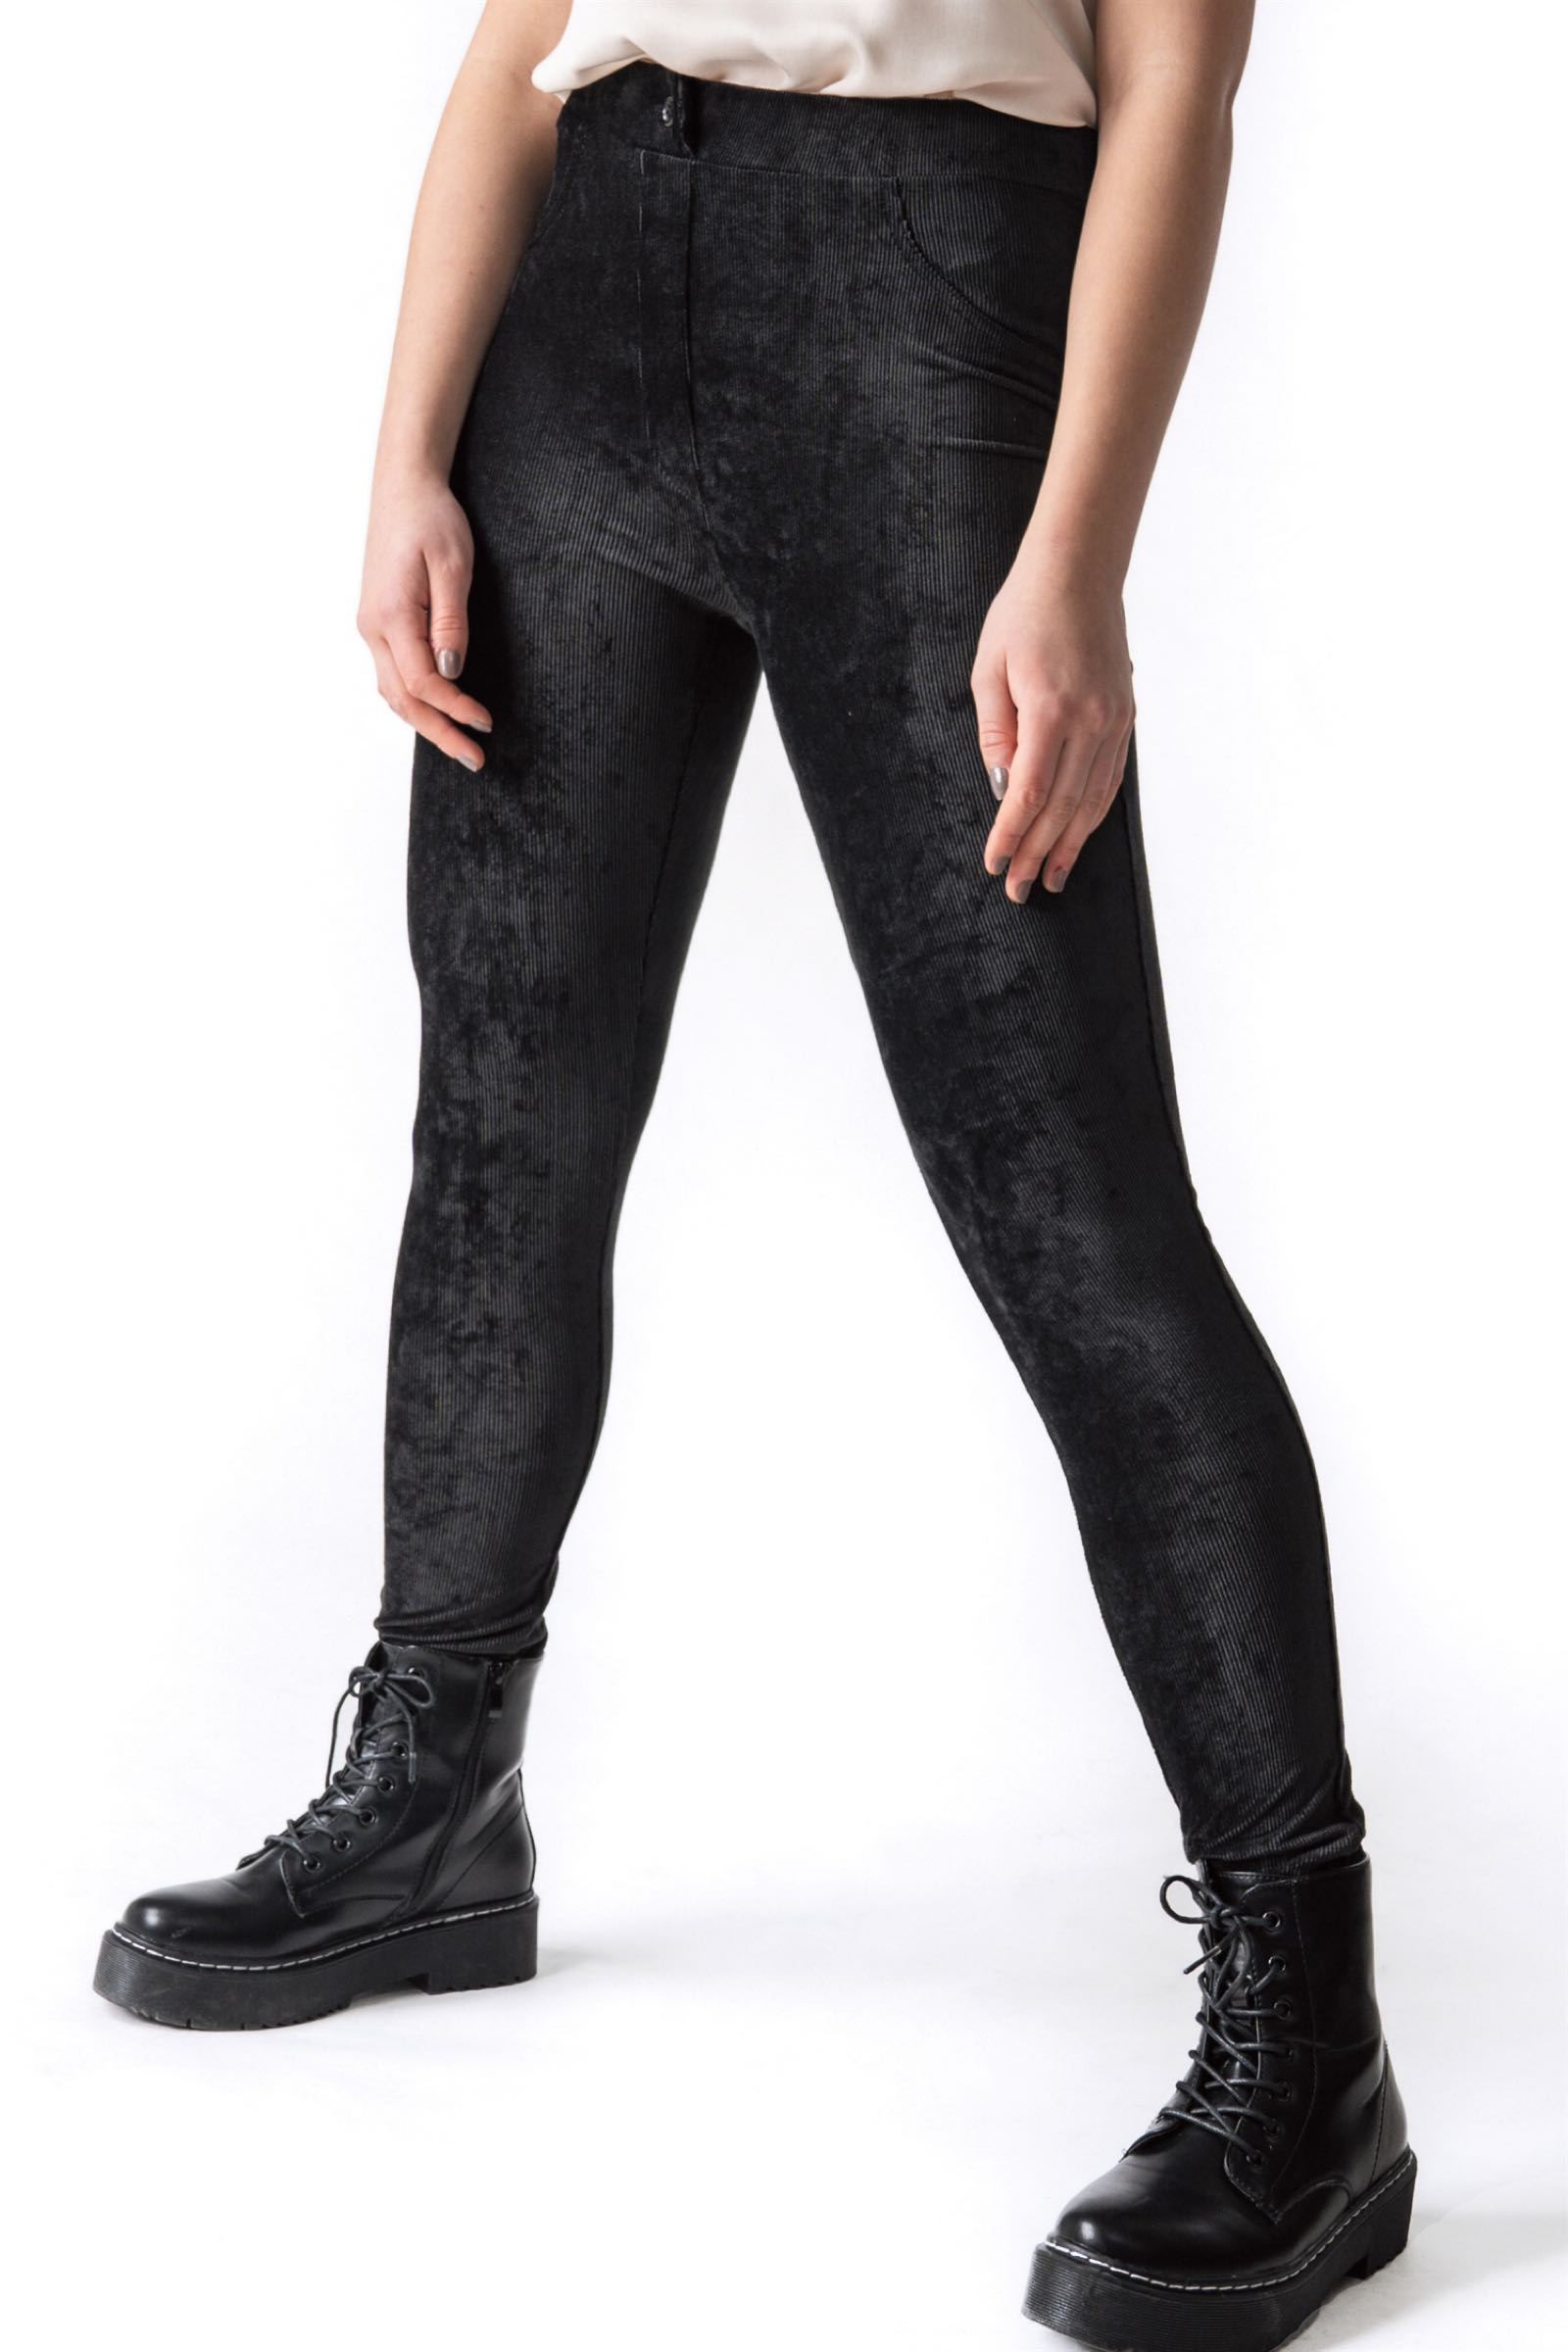 UNITY leggings, black